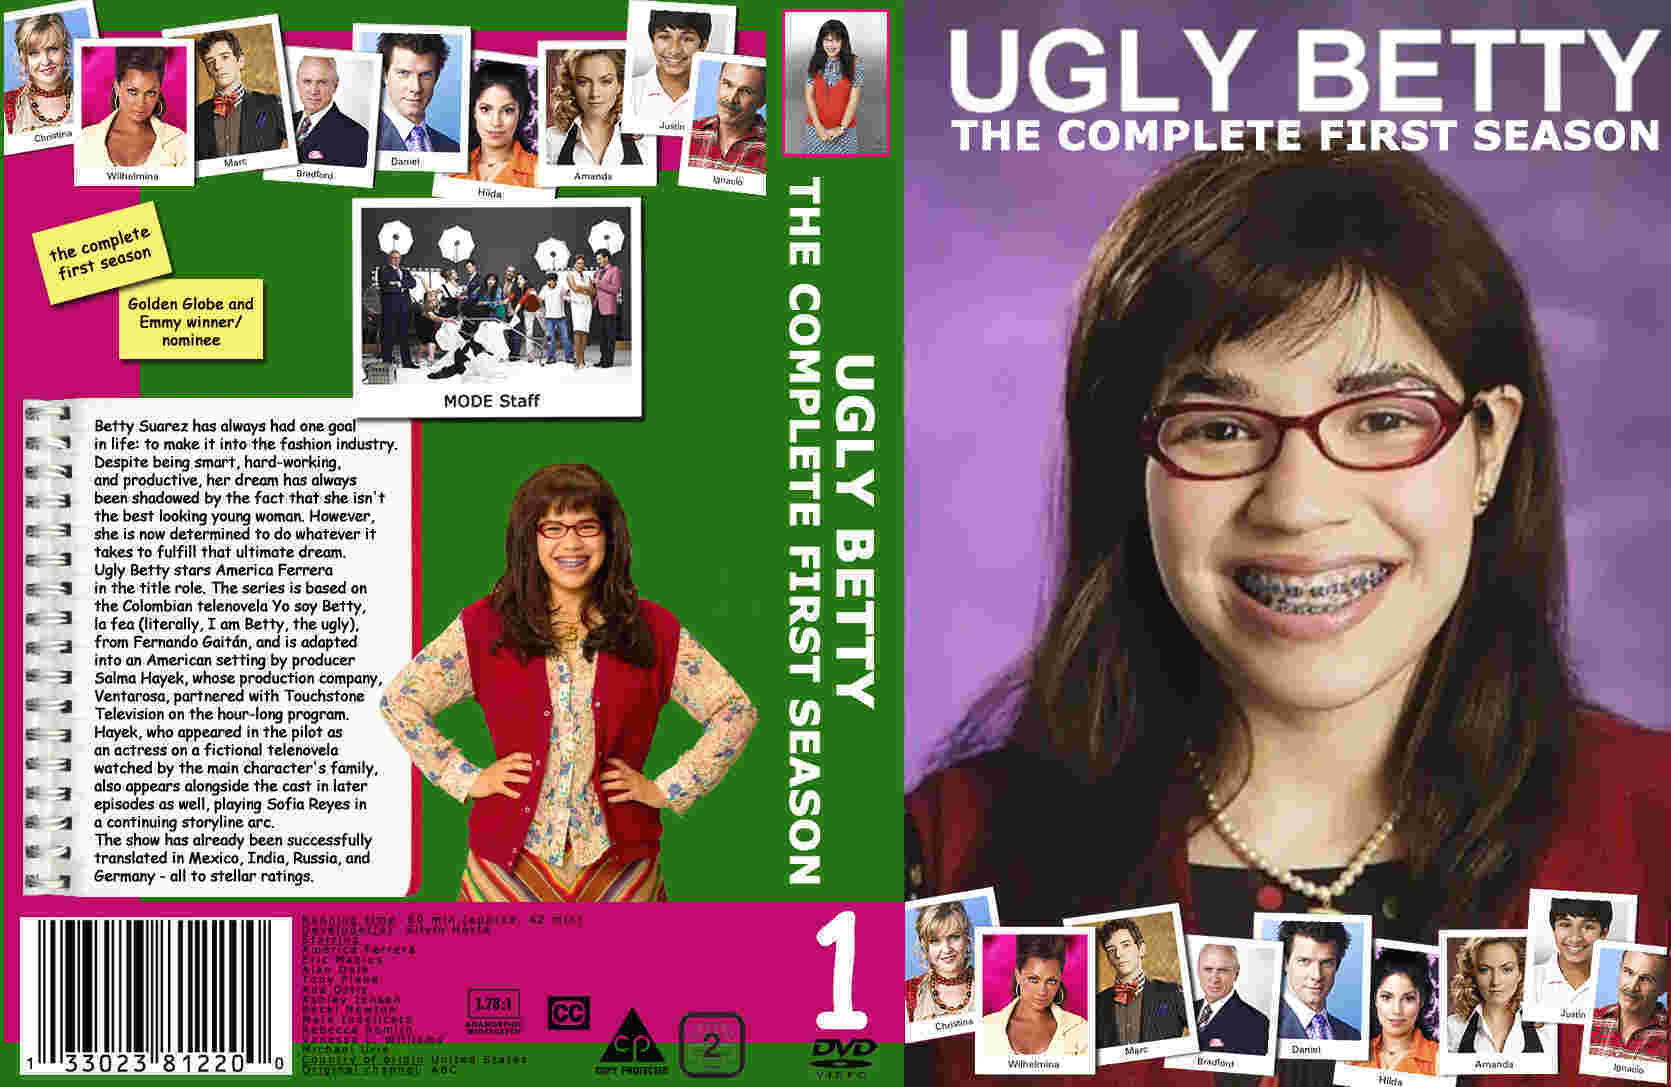 ugly betty season 1 dvd- region 2 custom